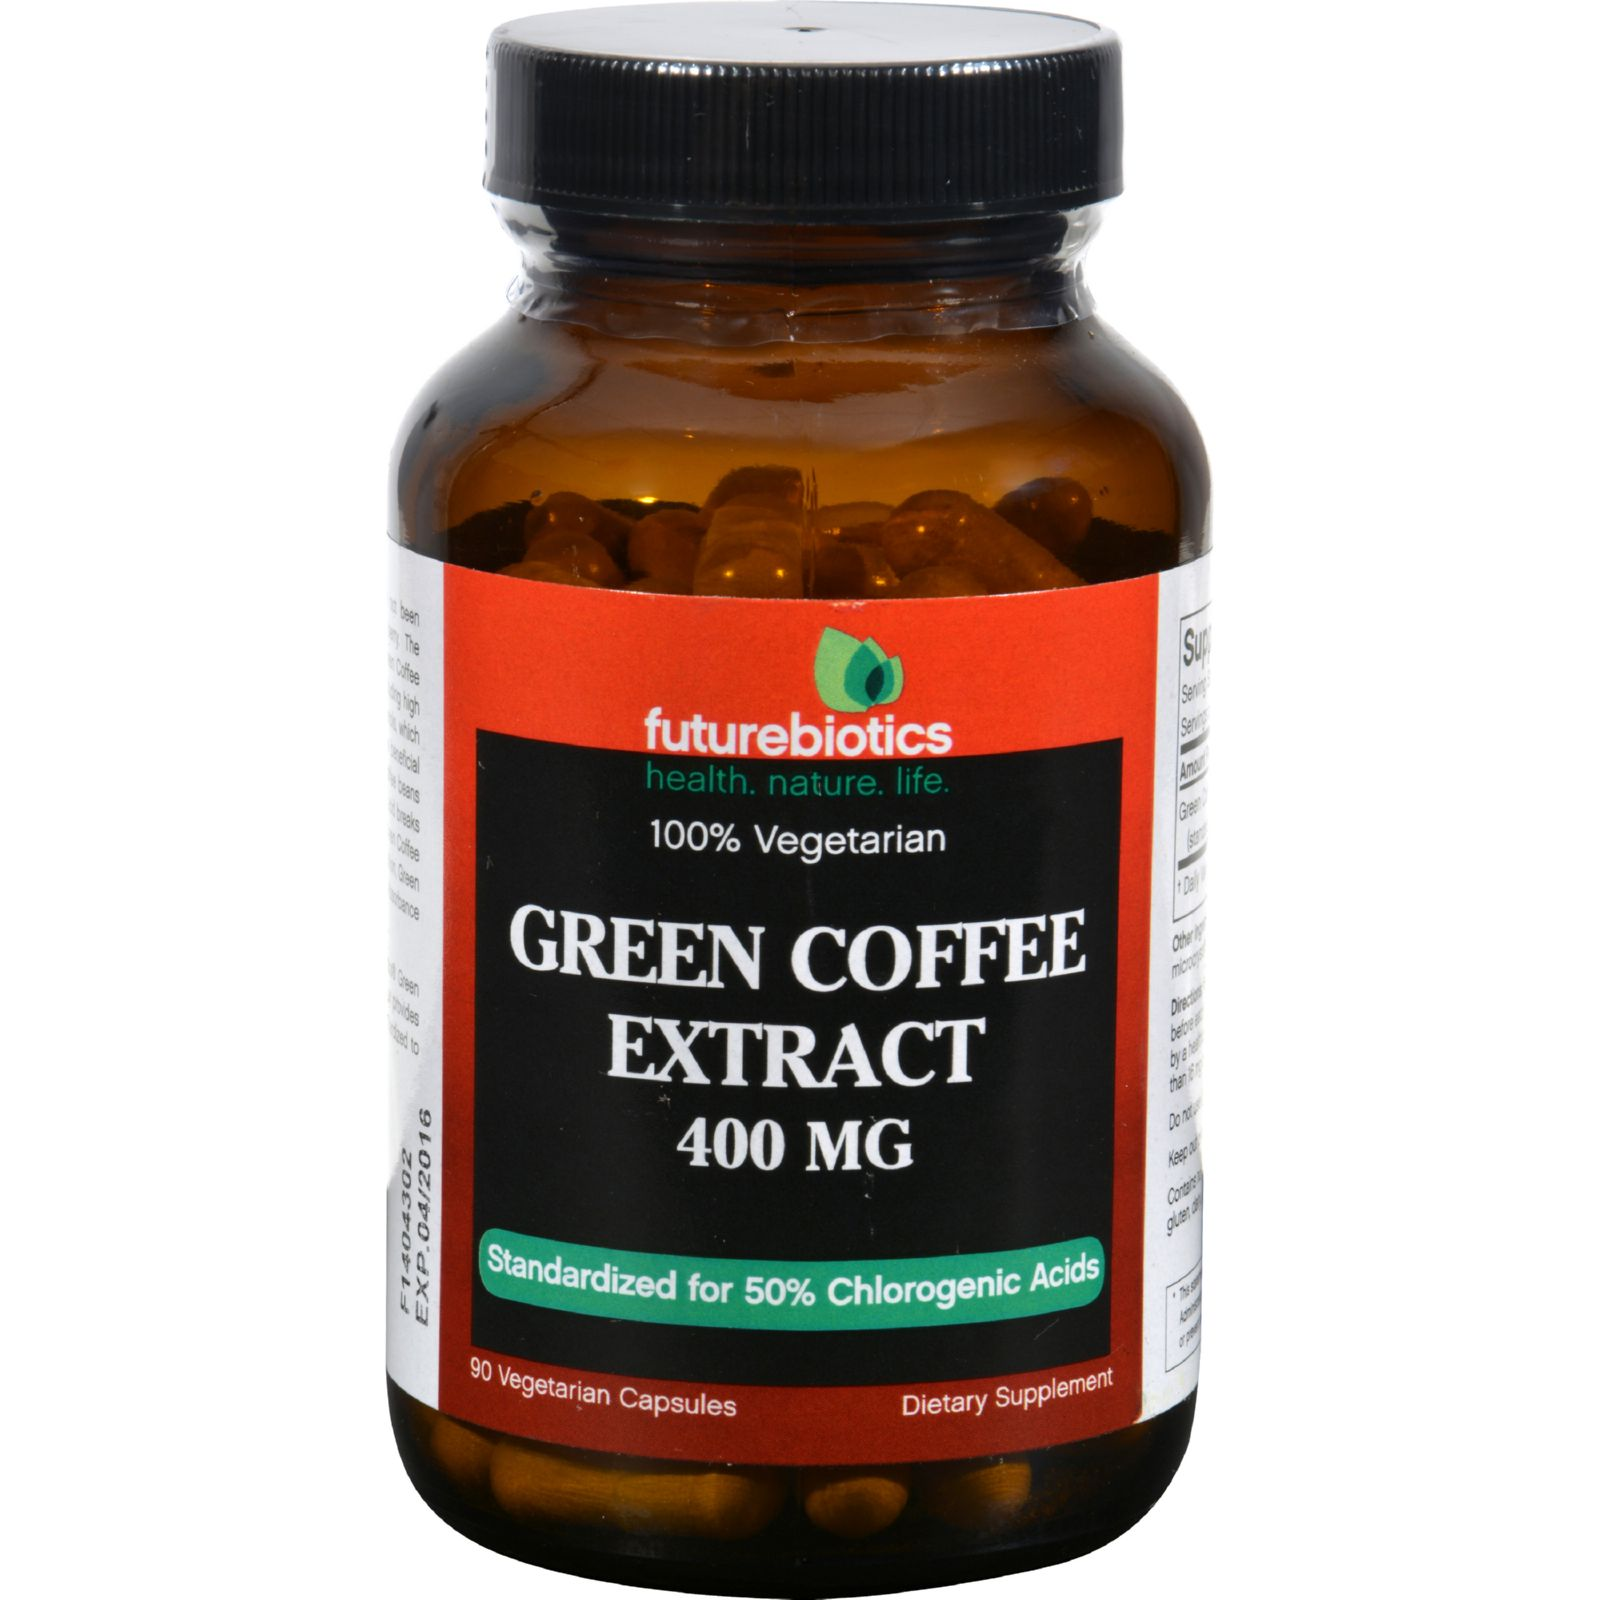 Futurebiotics Green Coffee Extract - 400 Mg - 90 Vegetarian Capsules